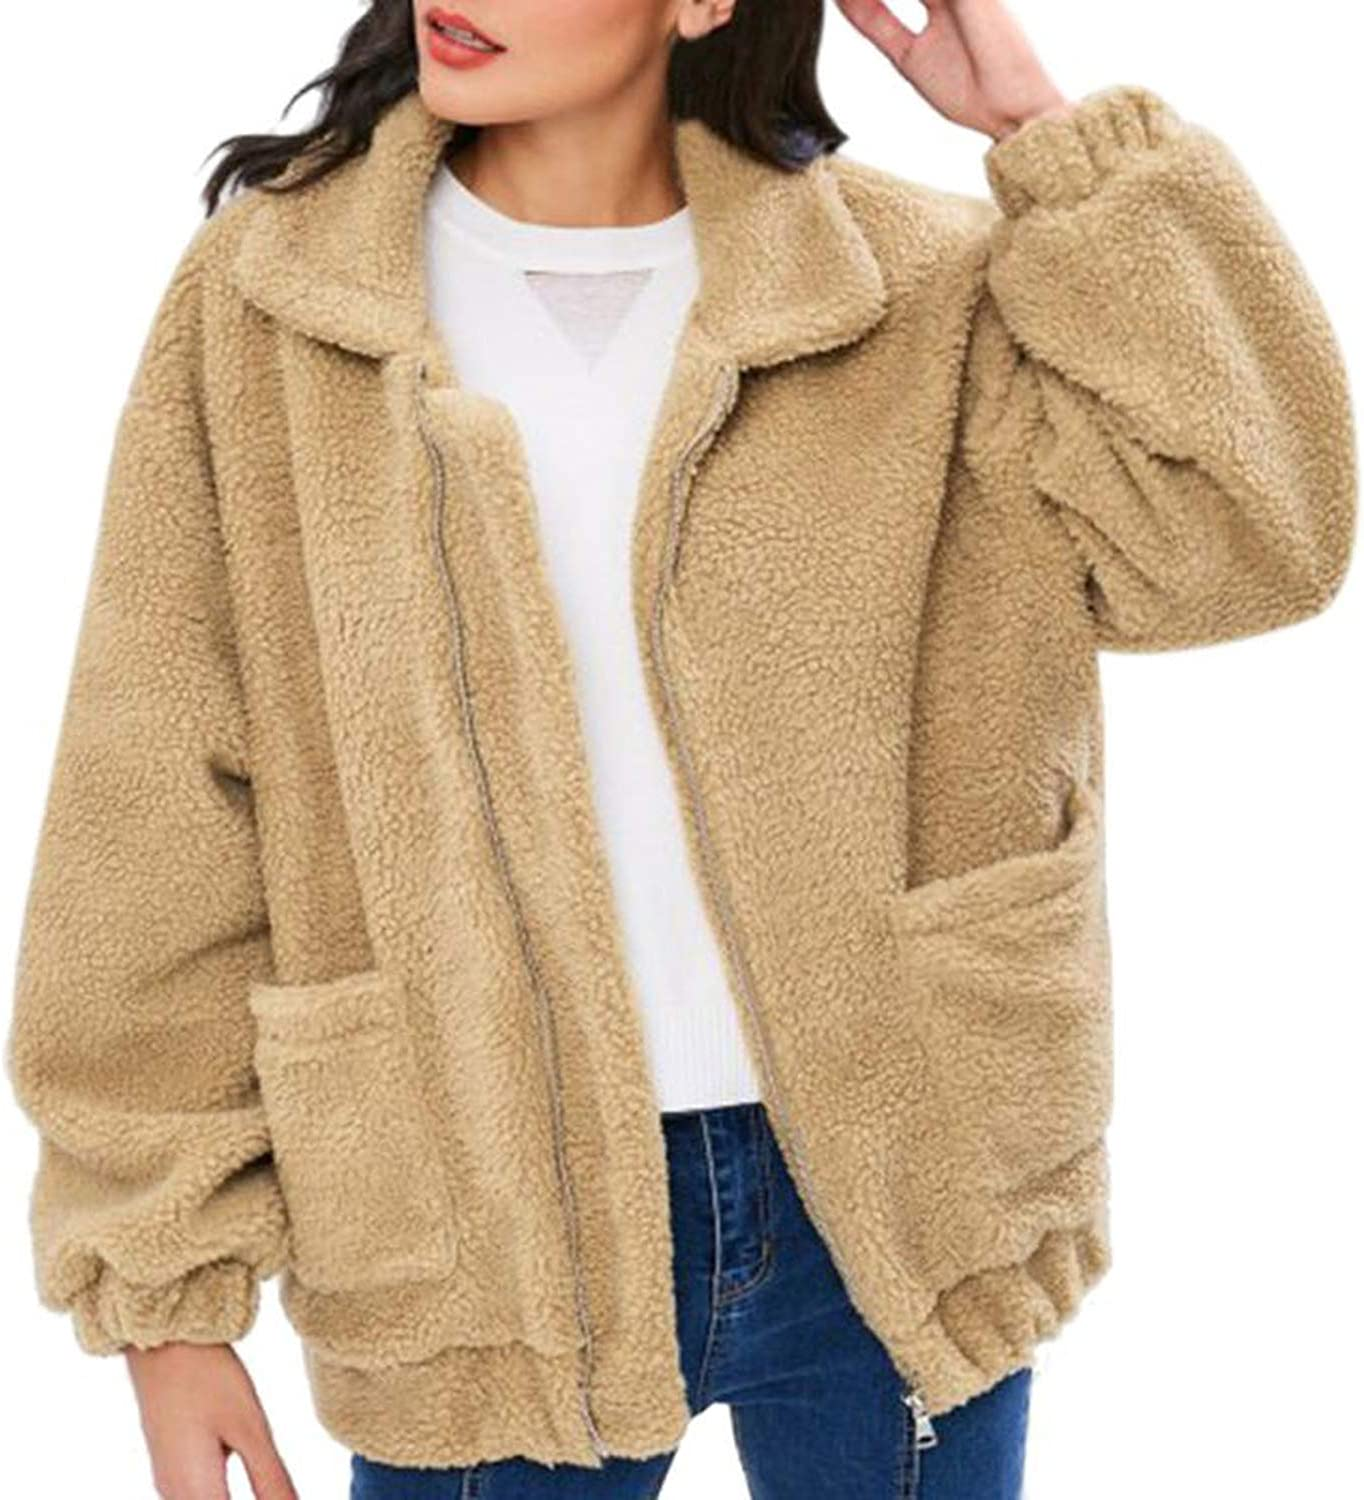 I'm good at you New Casual Faux Fur Coat Women Autumn Warm Soft Zipper Fur Jacket Female Plush Overcoat Outerwear